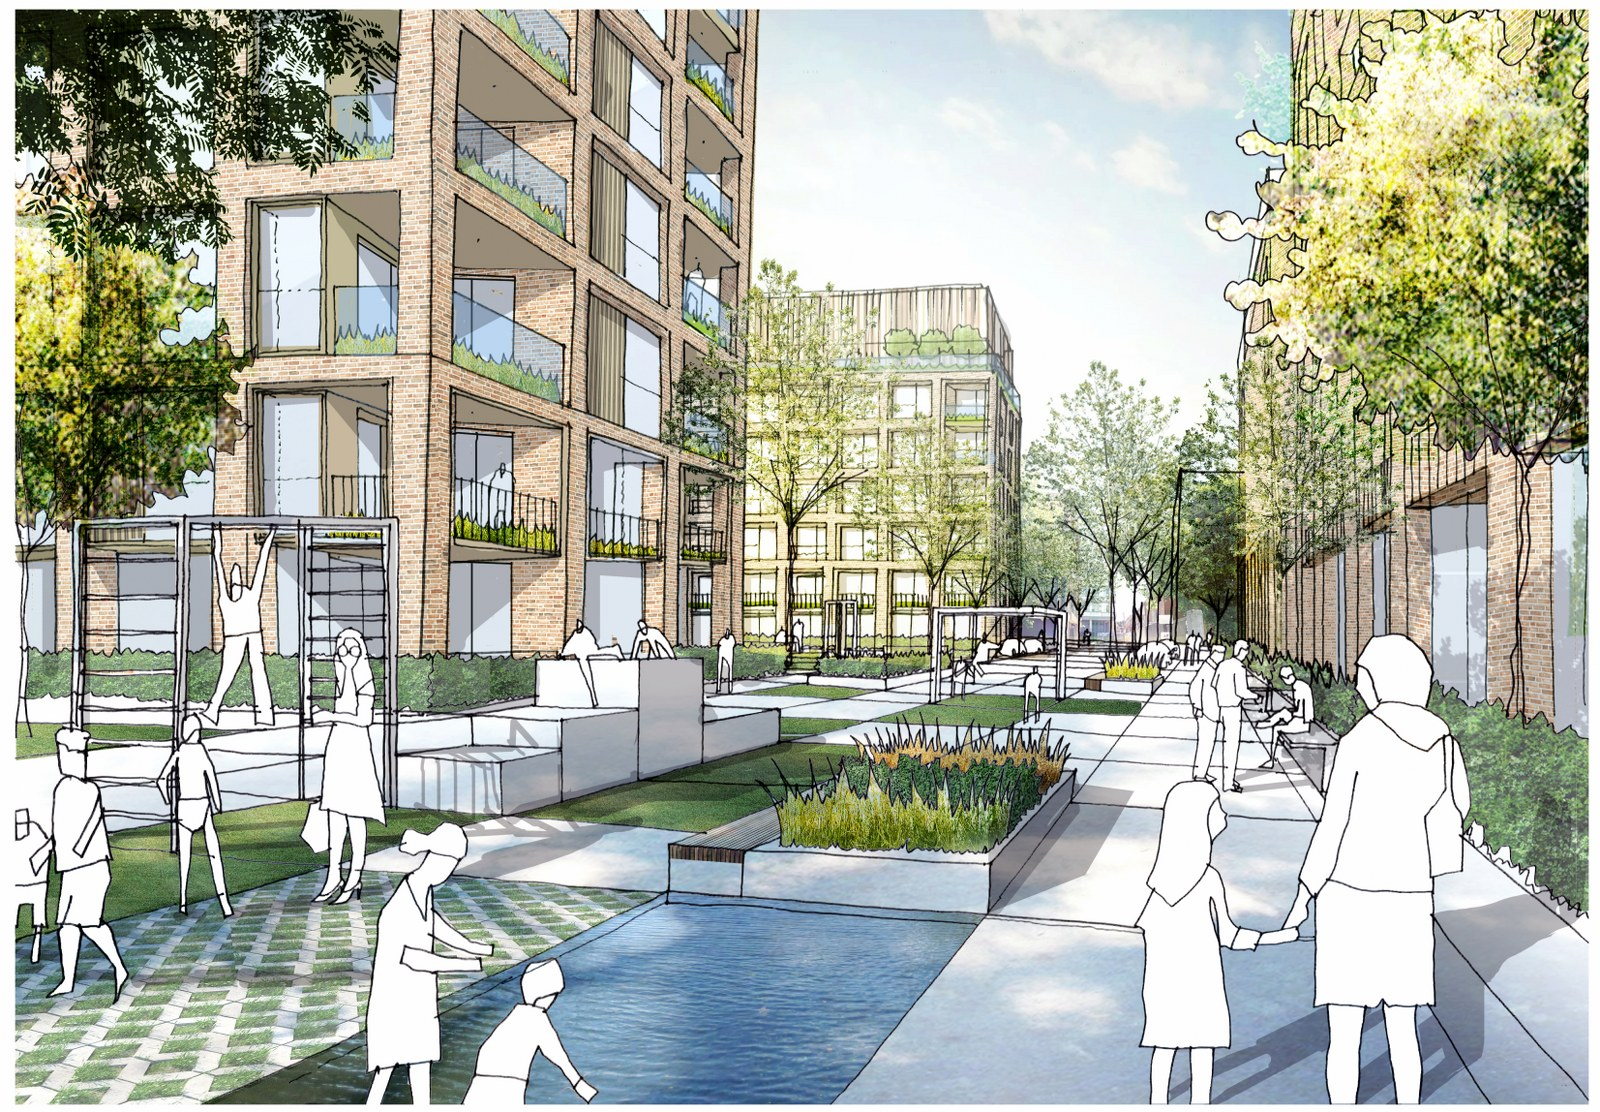 Regeneration scheme in Camberwell receives the green light from residents